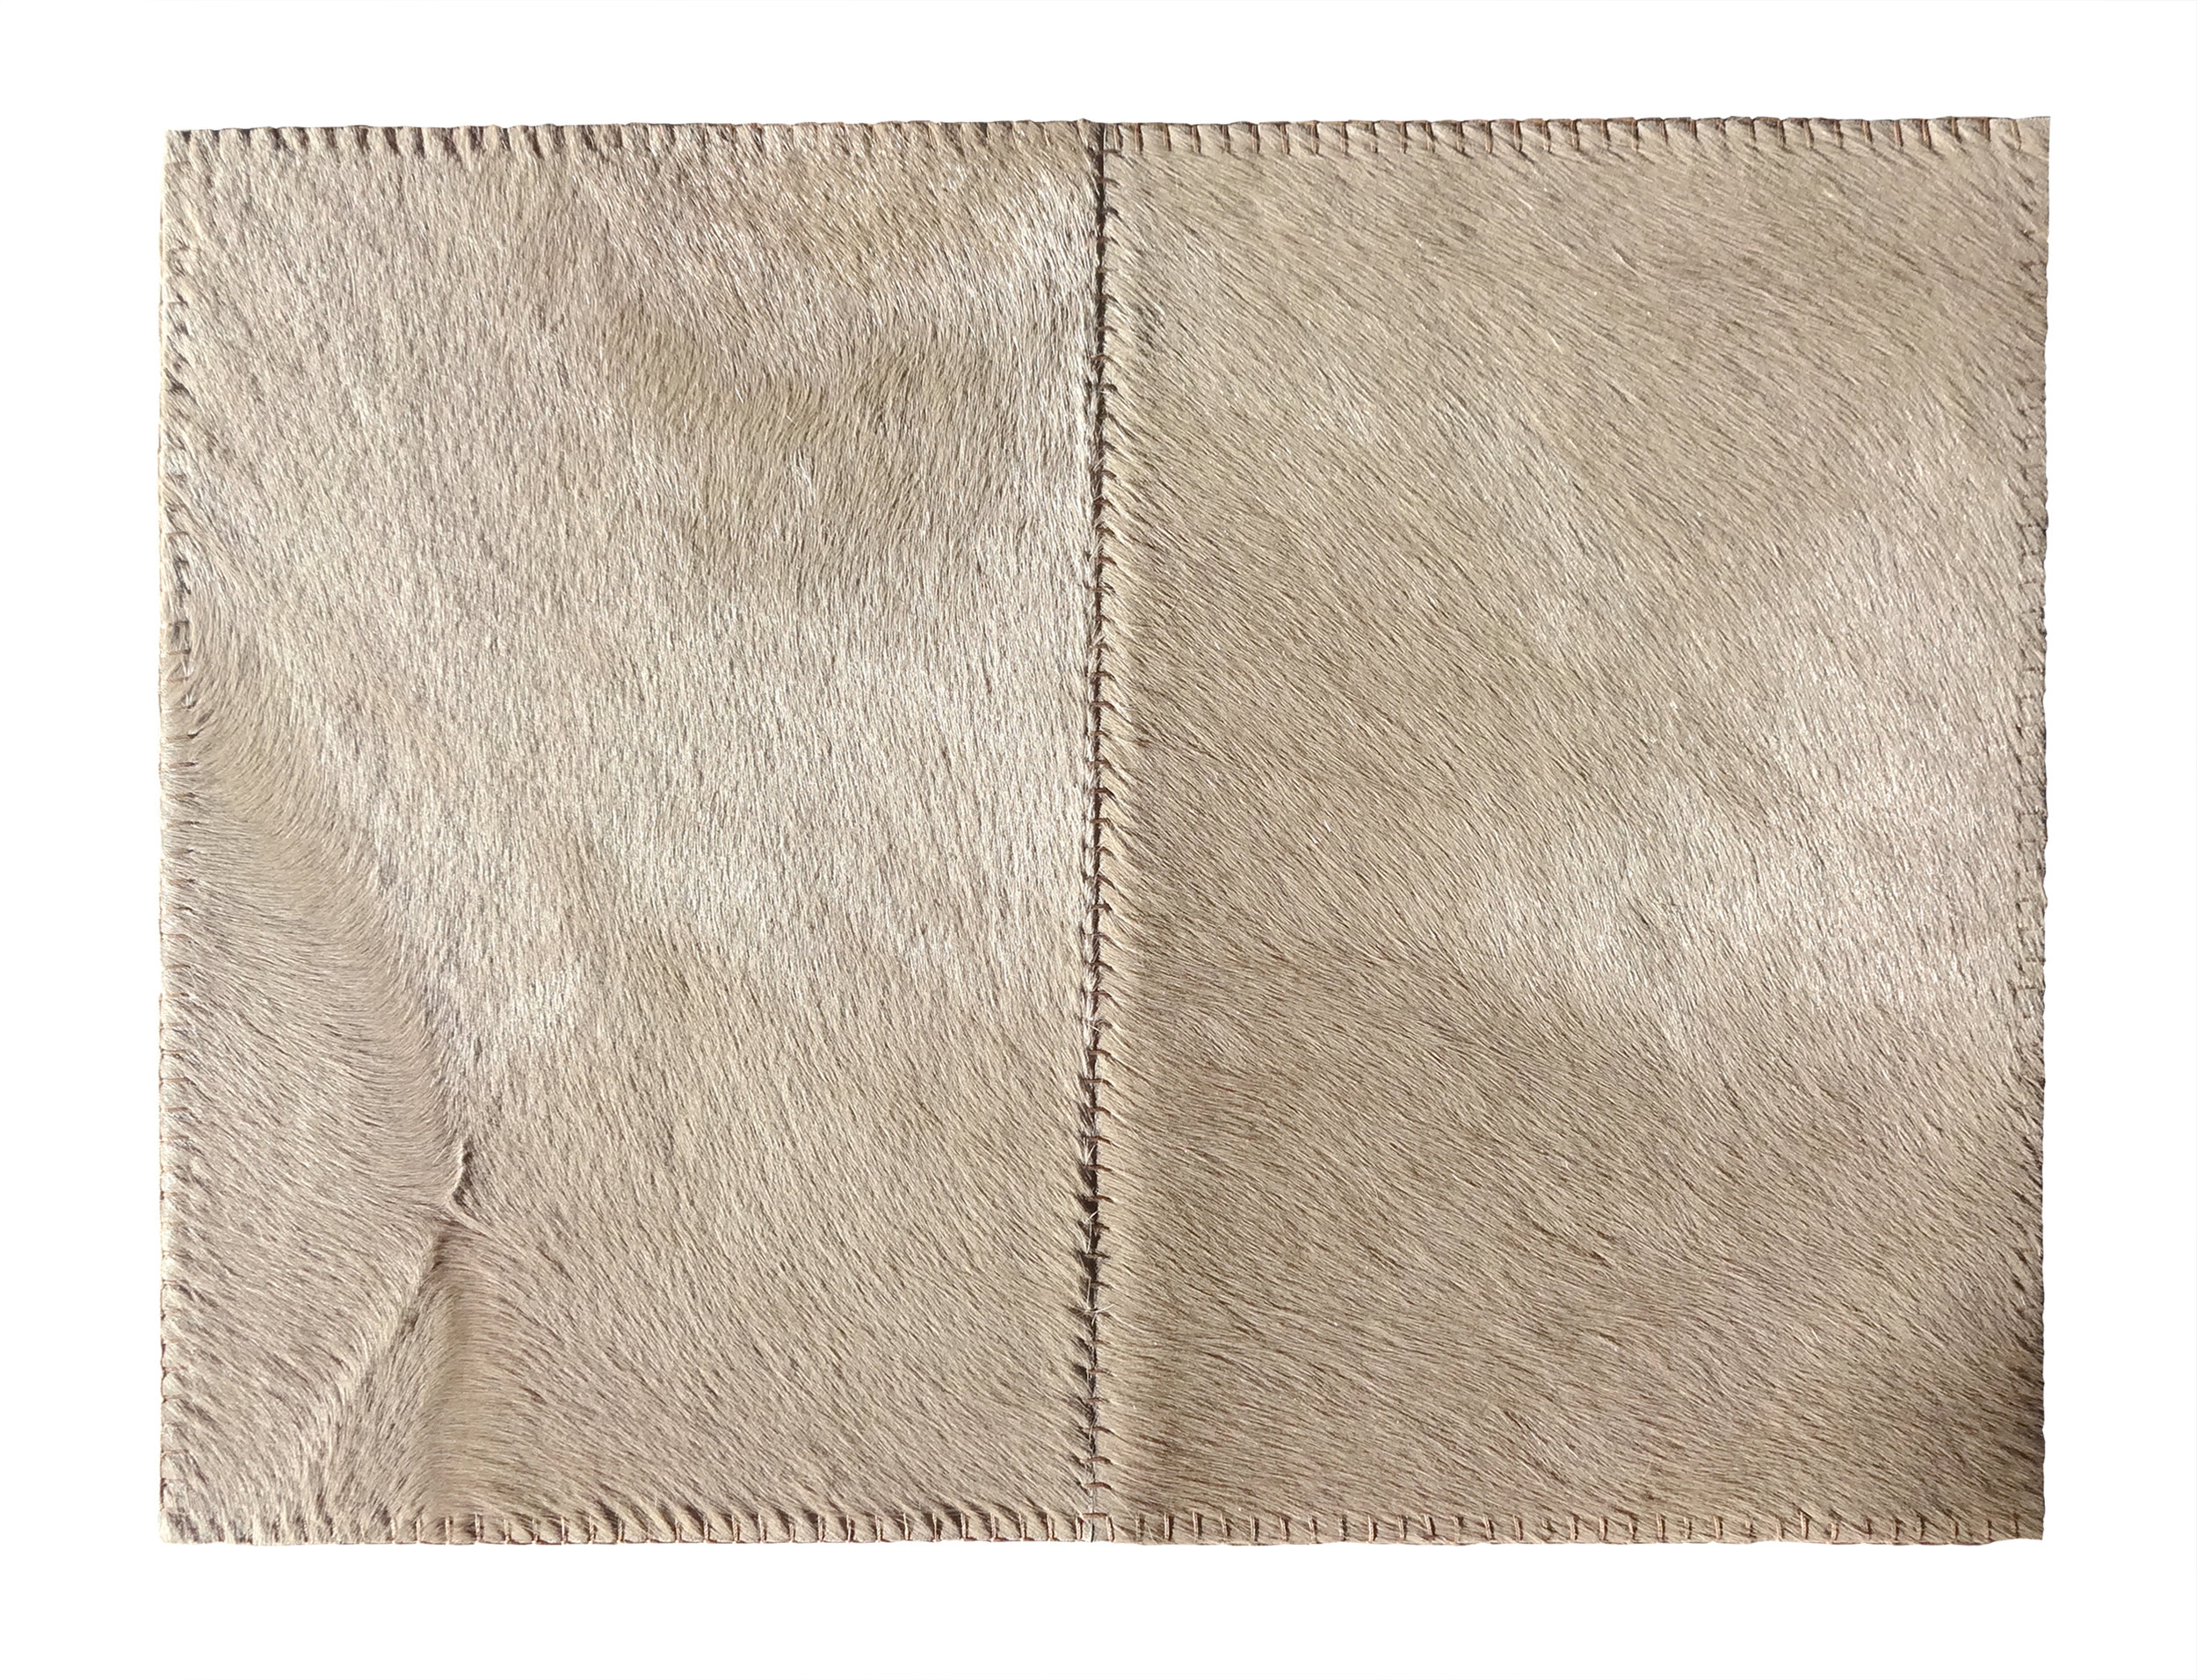 Stitched Taupe Cowhide